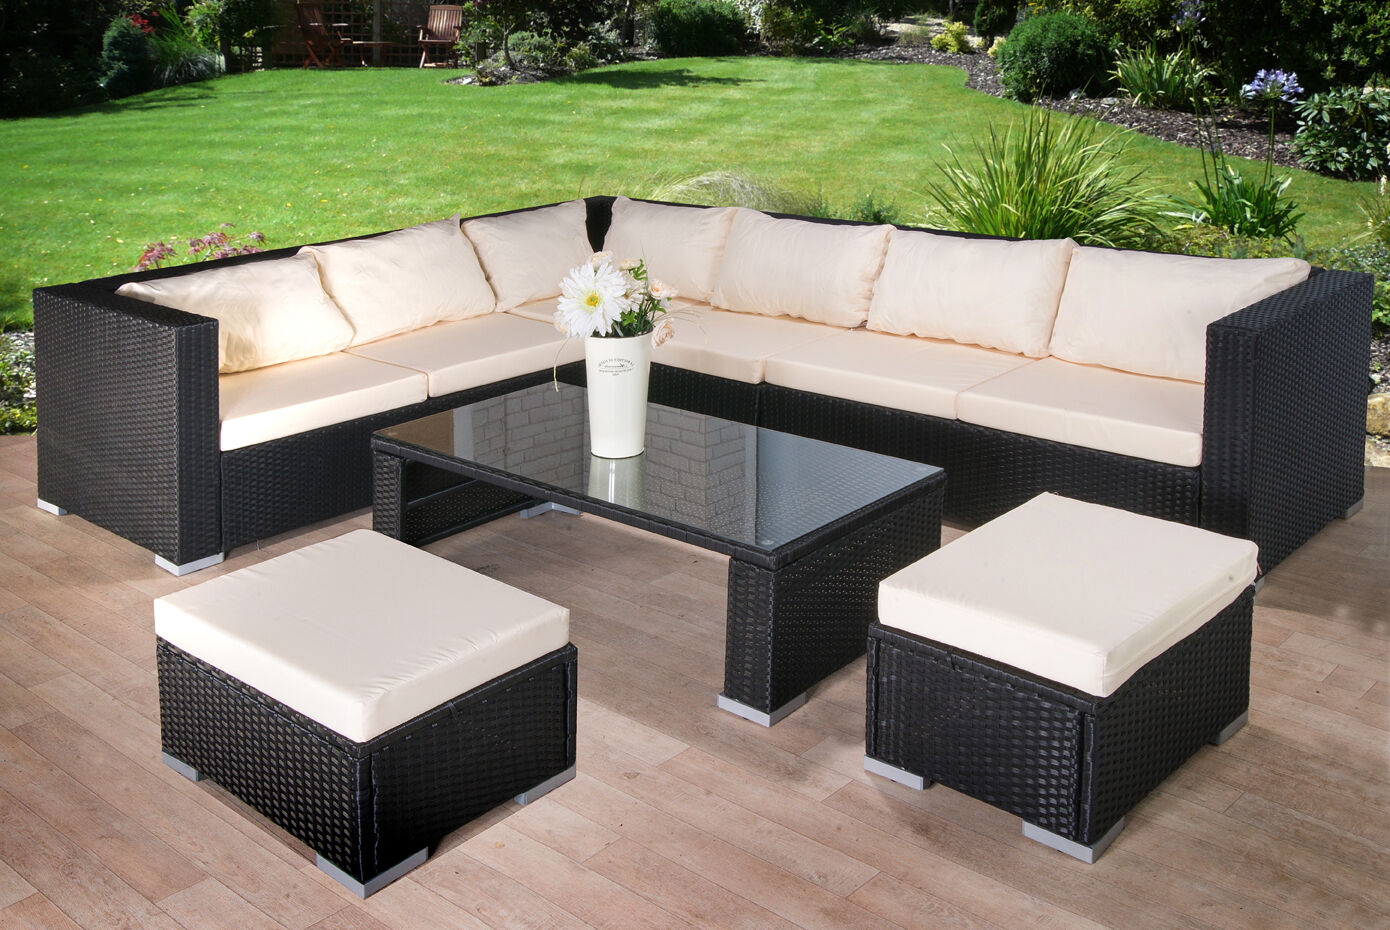 modern rattan garden furniture sofa set lounger 8 seater outdoor patio furniture. Black Bedroom Furniture Sets. Home Design Ideas